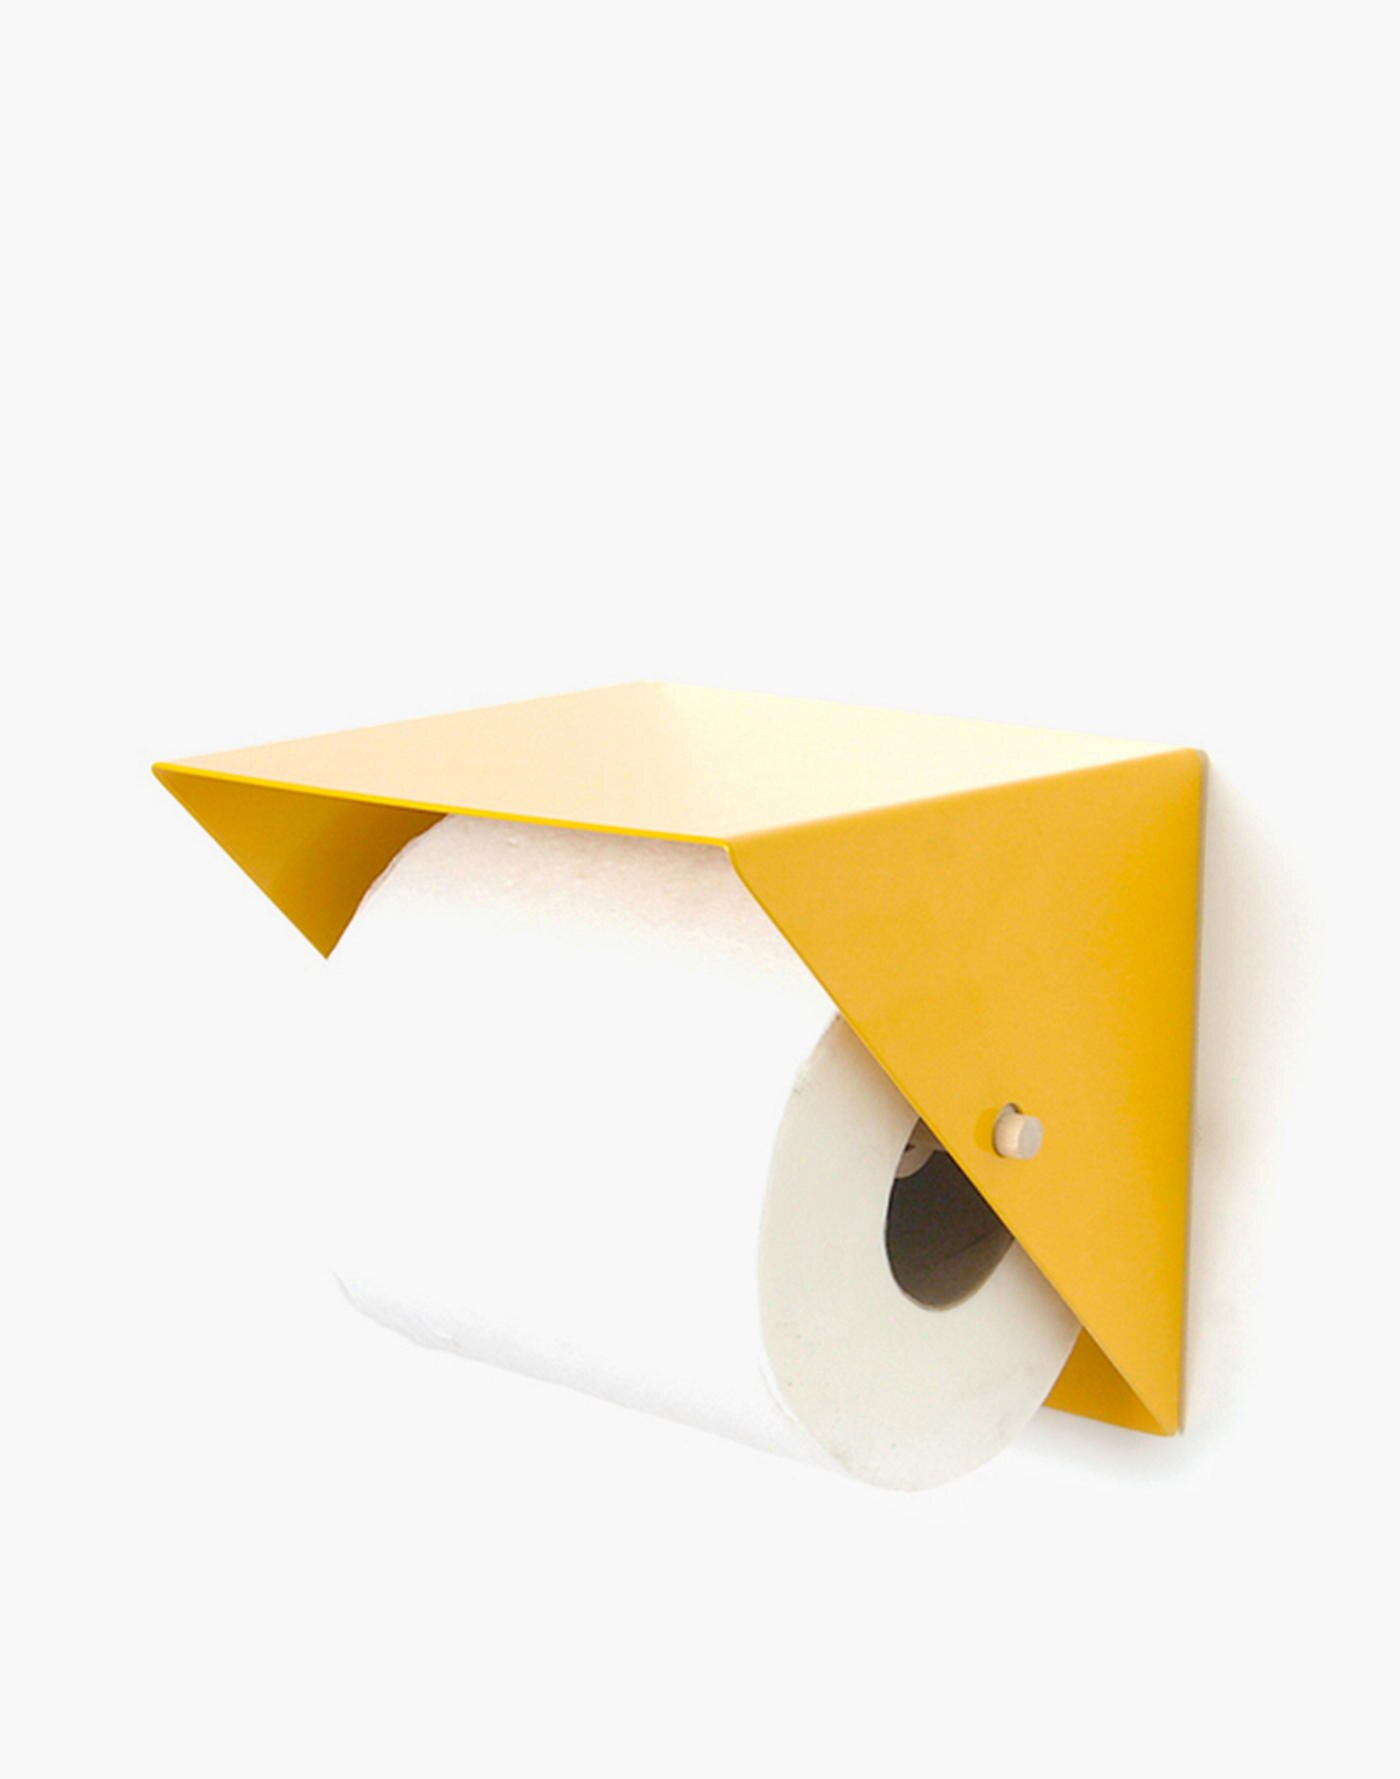 Midcentury-style toilet paper holder